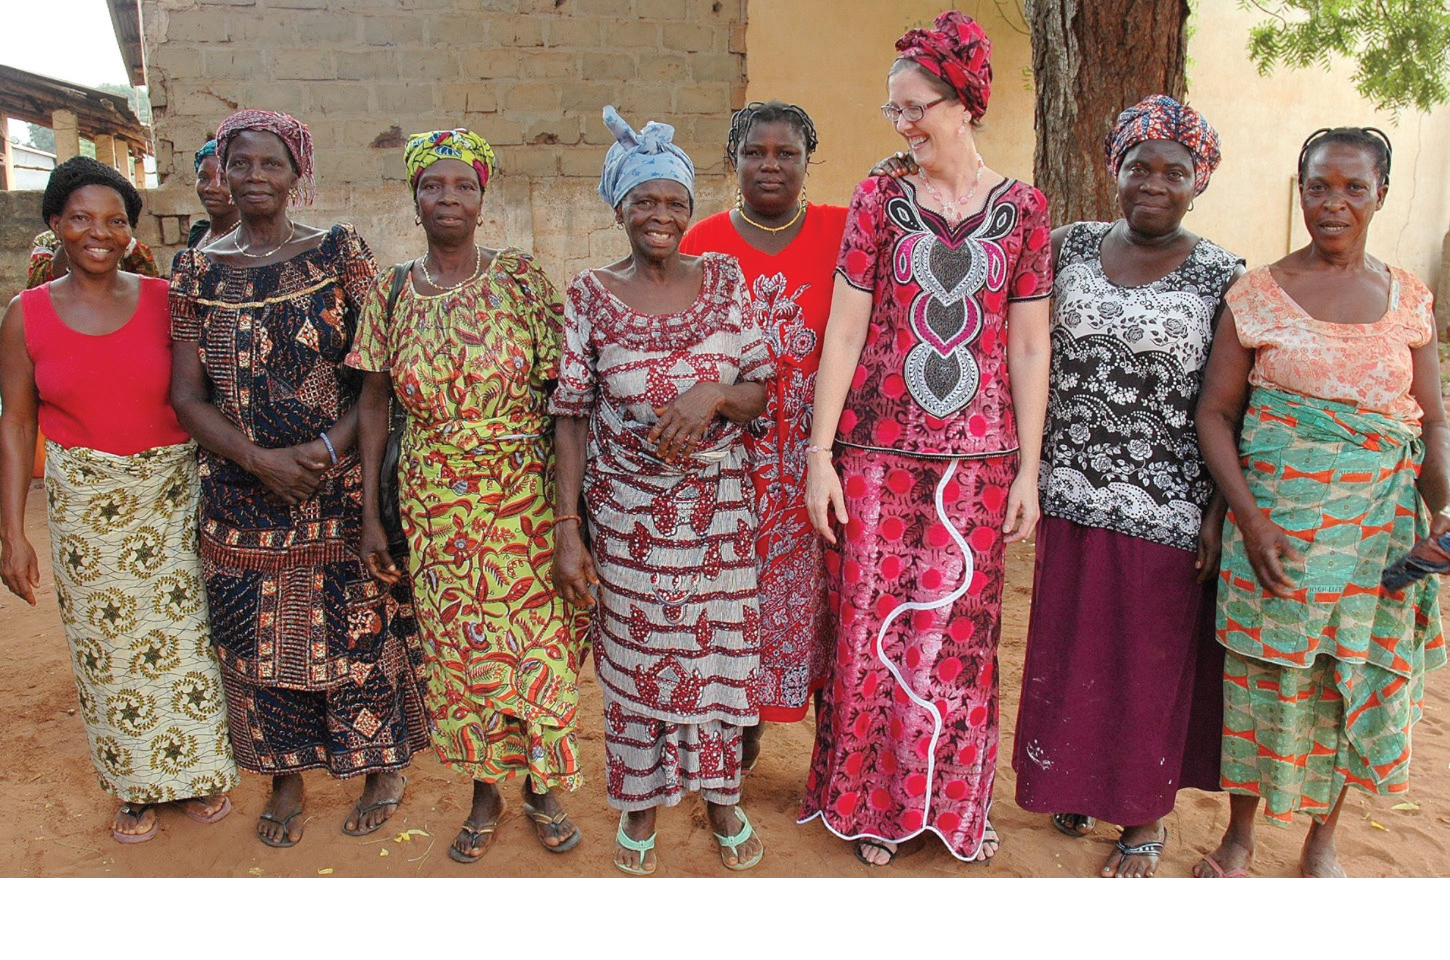 Lynn Hutchinson (third from right) gathers with Baptist women's groups within her community. The Hutchinsons live in the community in which they serve and celebrate the assets that each individual brings to the table.